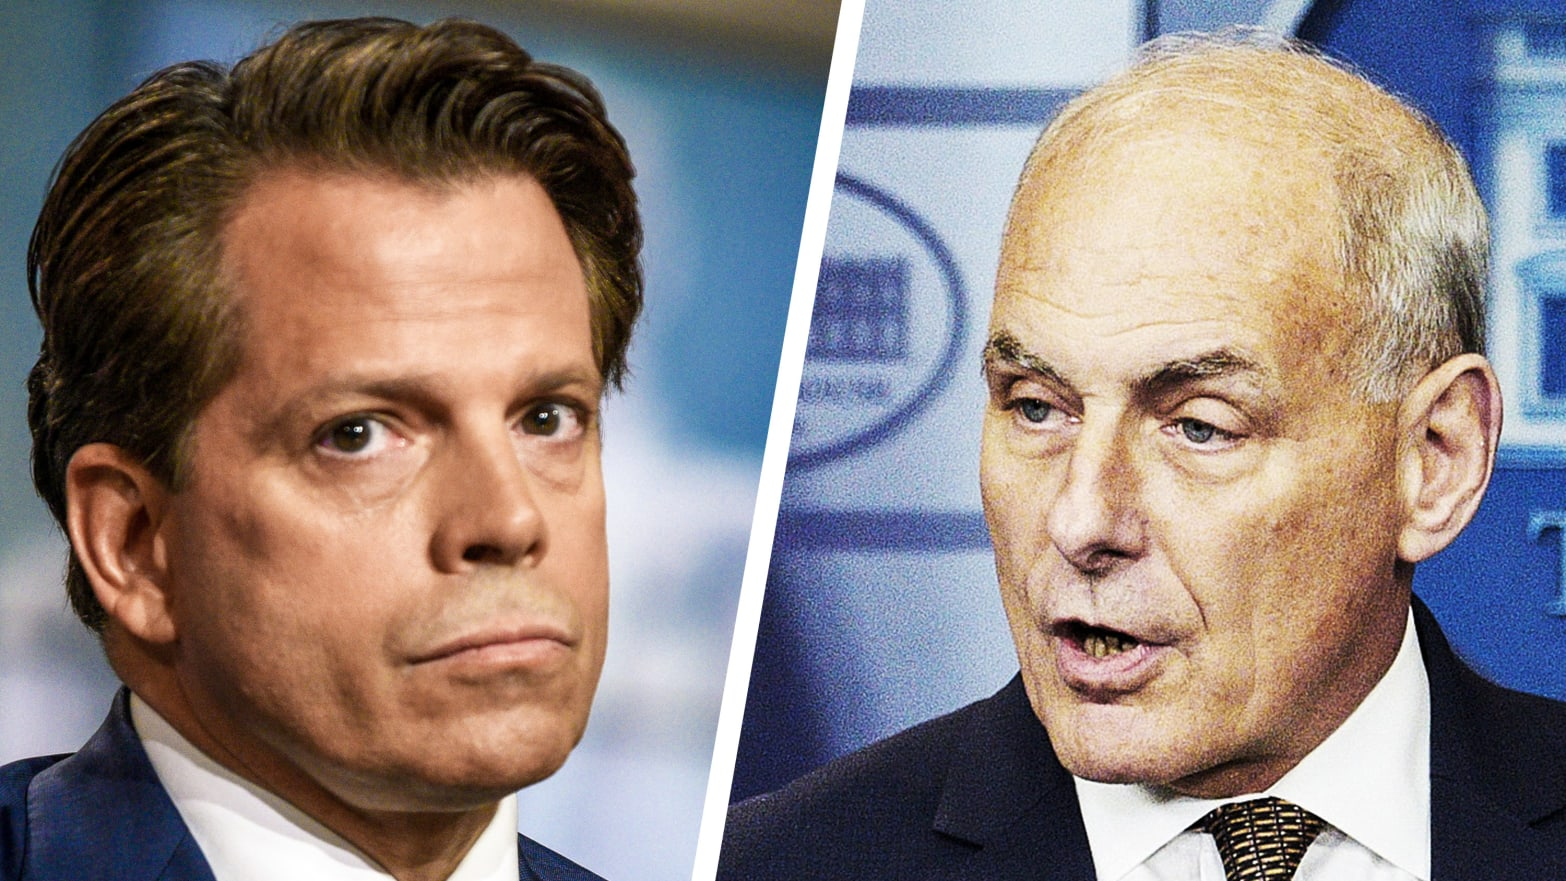 Anthony Scaramucci and the Man Who Fired Him, John Kelly, Reunite to Vent About Time in the White House